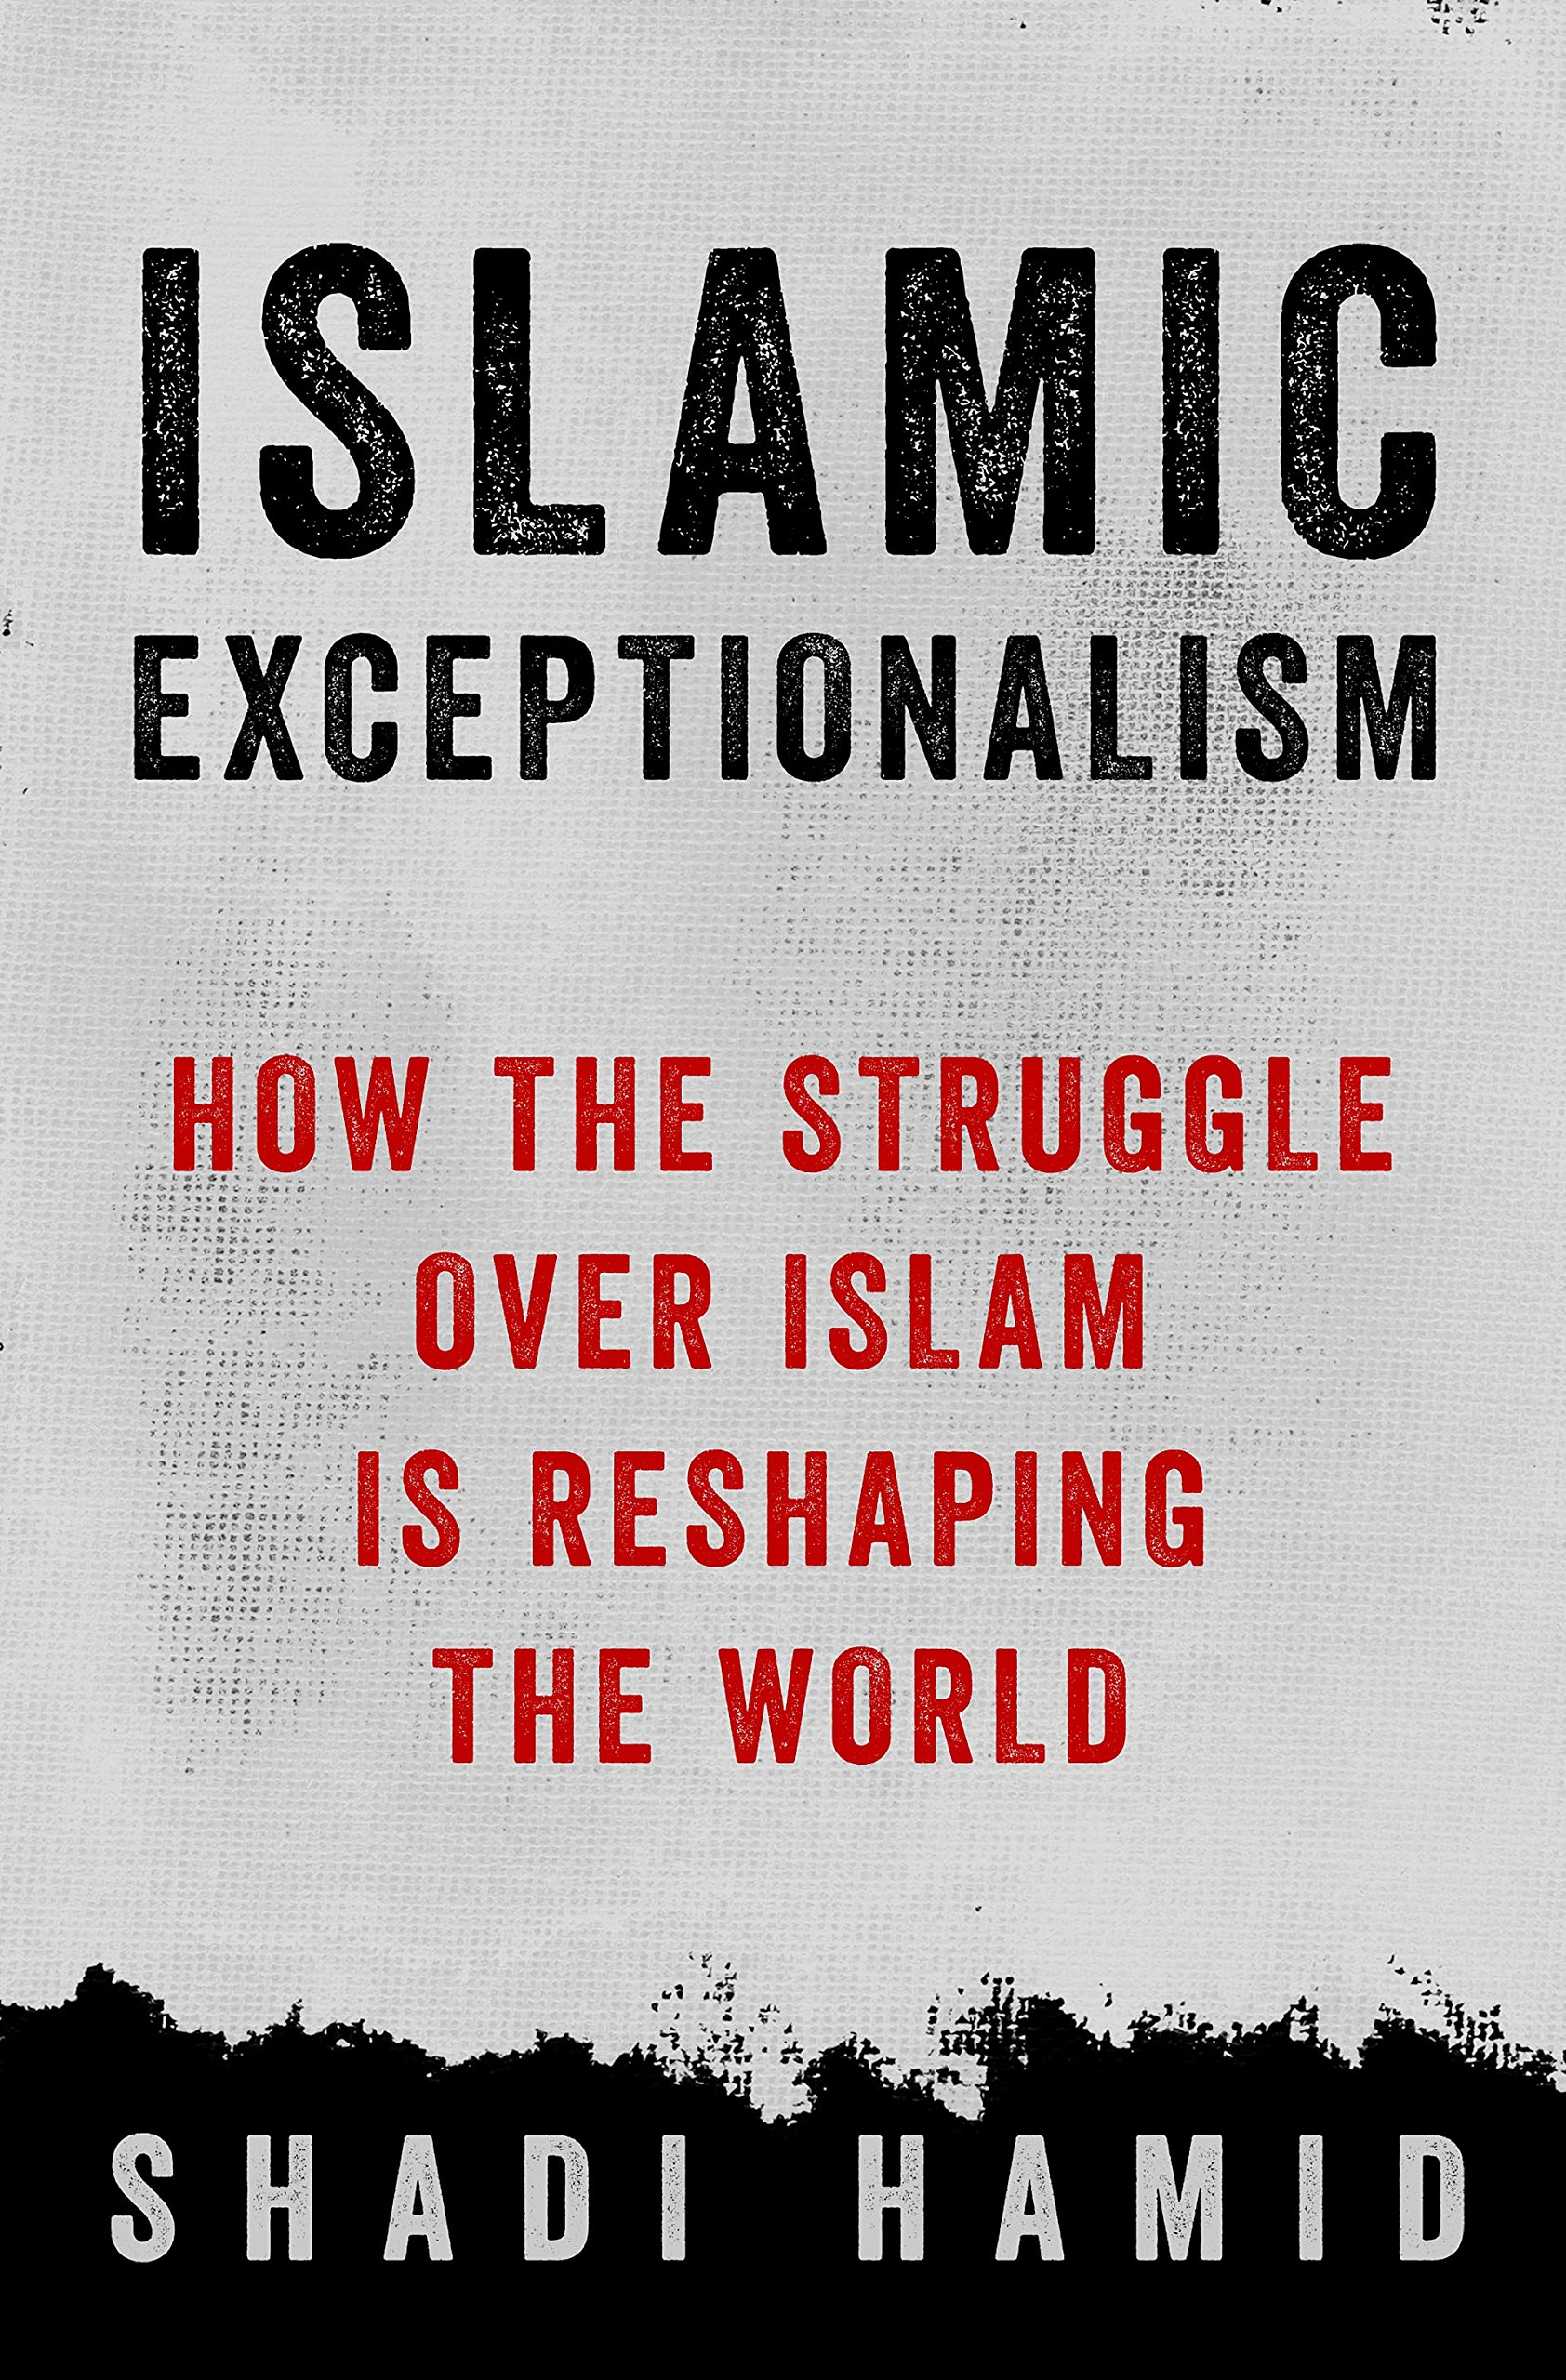 An experiment with the different world religions a clear and empty - Islamic Exceptionalism How The Struggle Over Islam Is Reshaping The World Shadi Hamid 9781250061010 Amazon Com Books